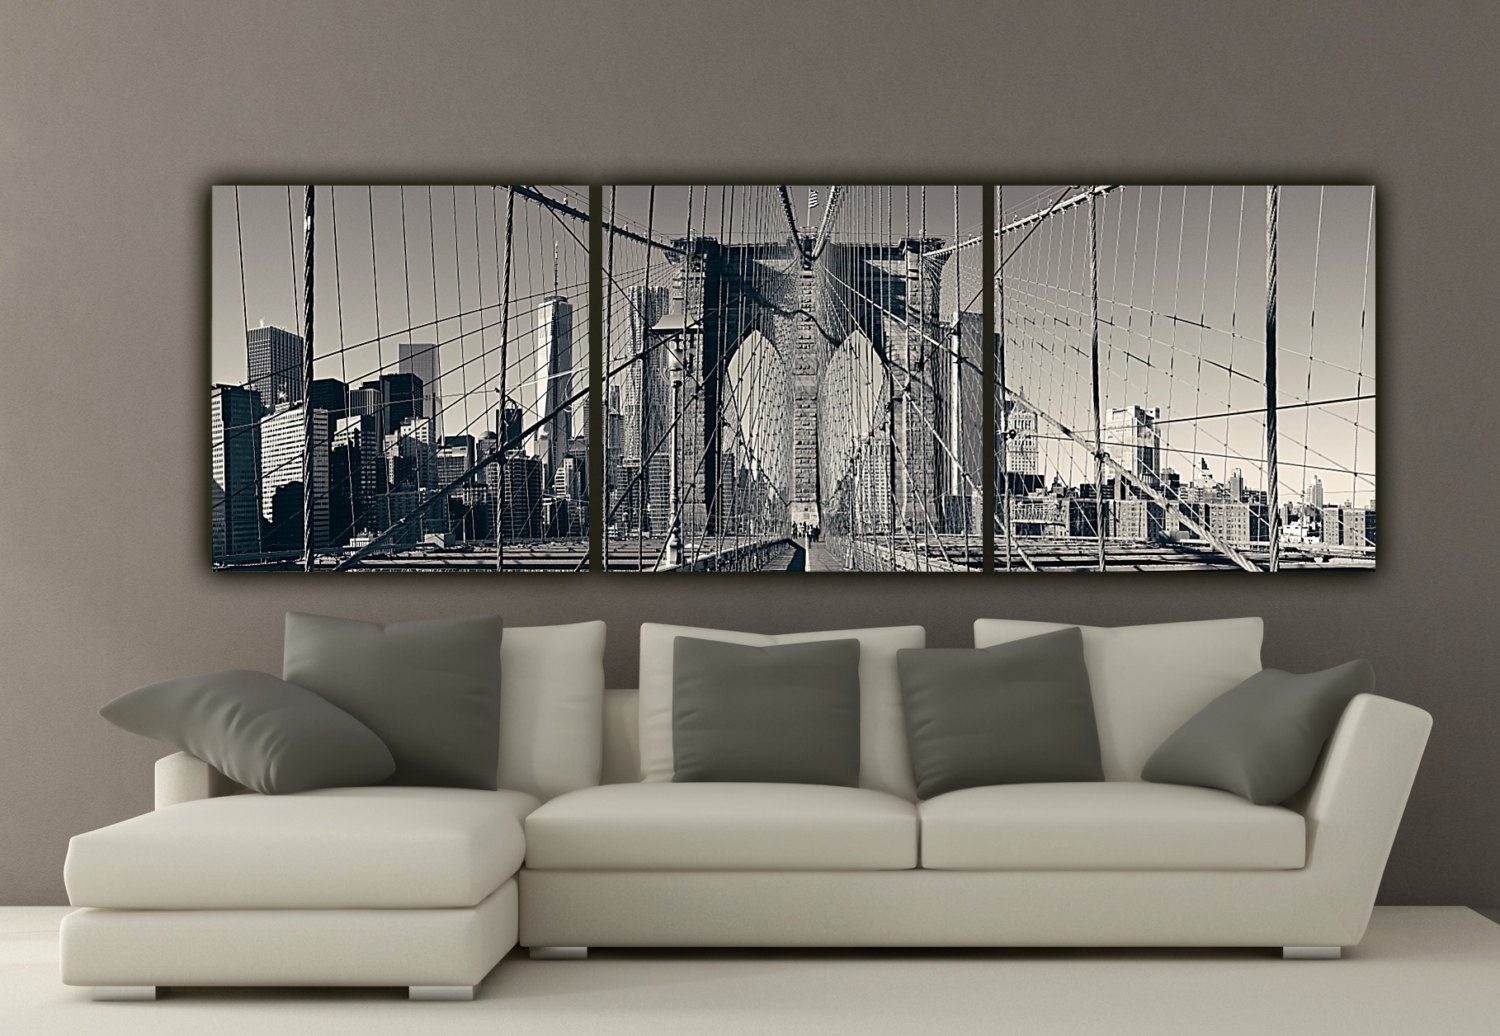 New Canvas Wall Art New York City | Wall Decorations pertaining to Most Up-to-Date New York Wall Art